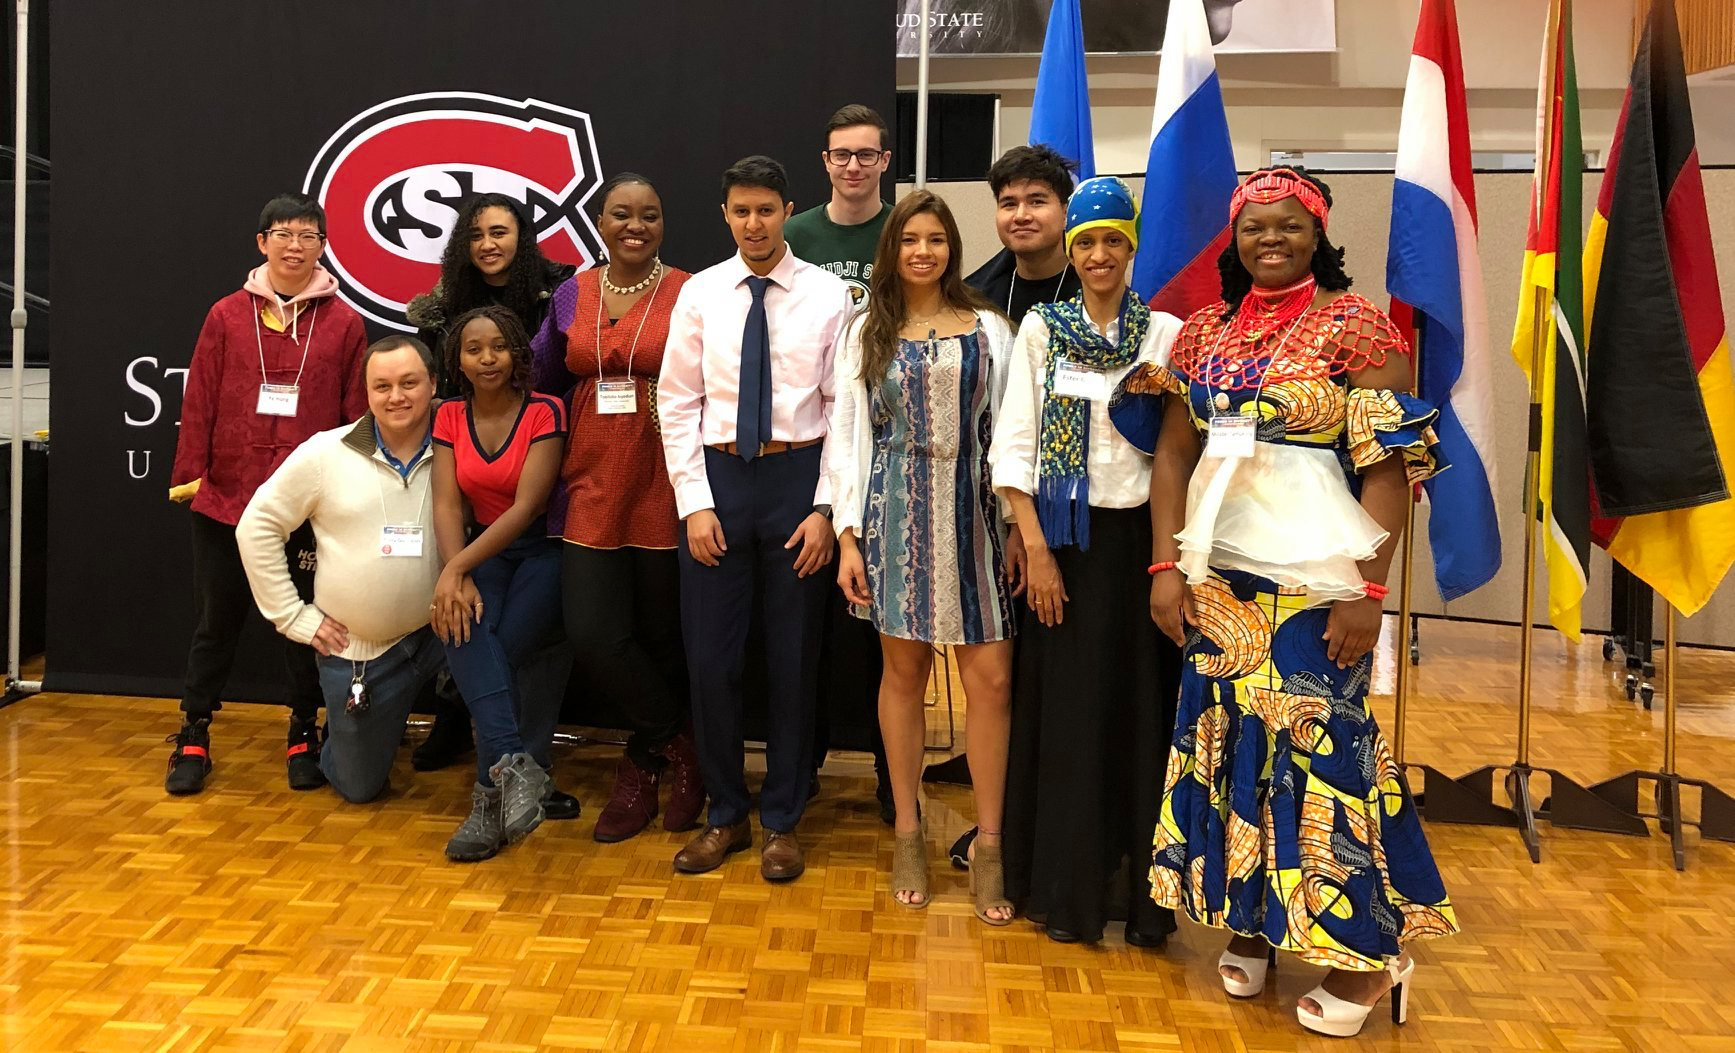 Students at the annual power in diversity conference